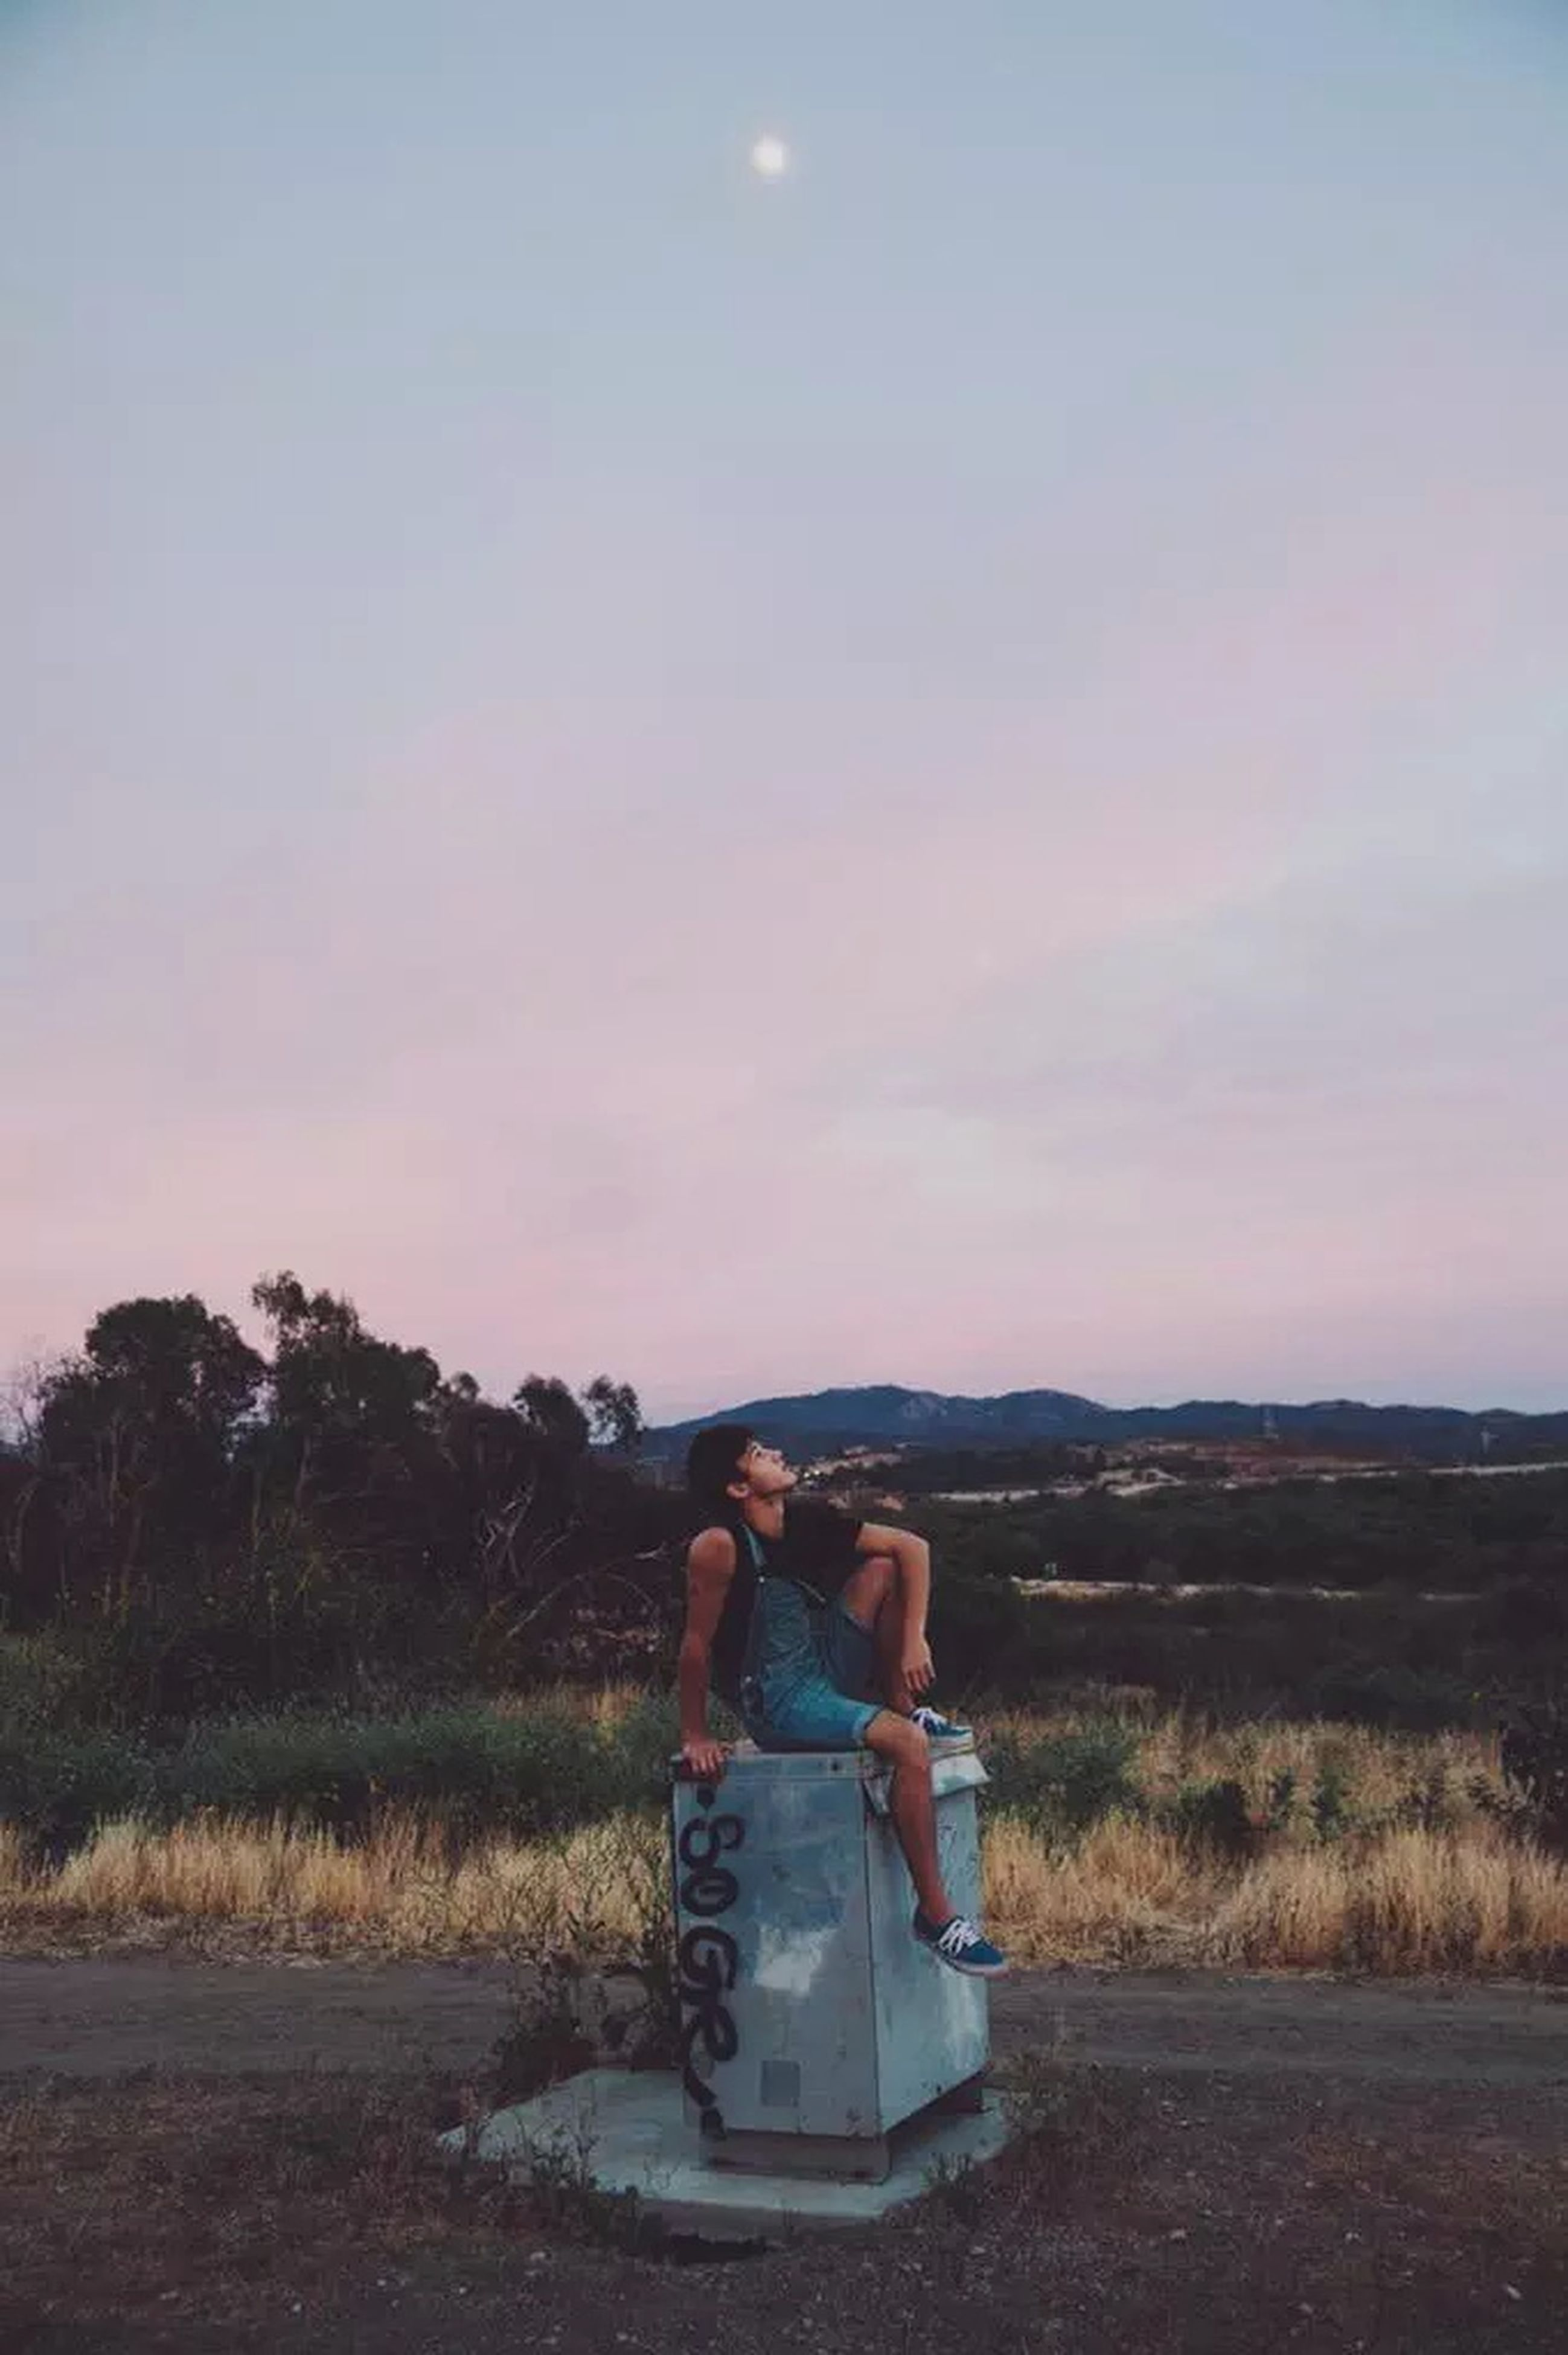 lifestyles, leisure activity, sky, landscape, full length, field, tranquil scene, casual clothing, tranquility, rear view, scenics, nature, sitting, beauty in nature, grass, relaxation, non-urban scene, sunset